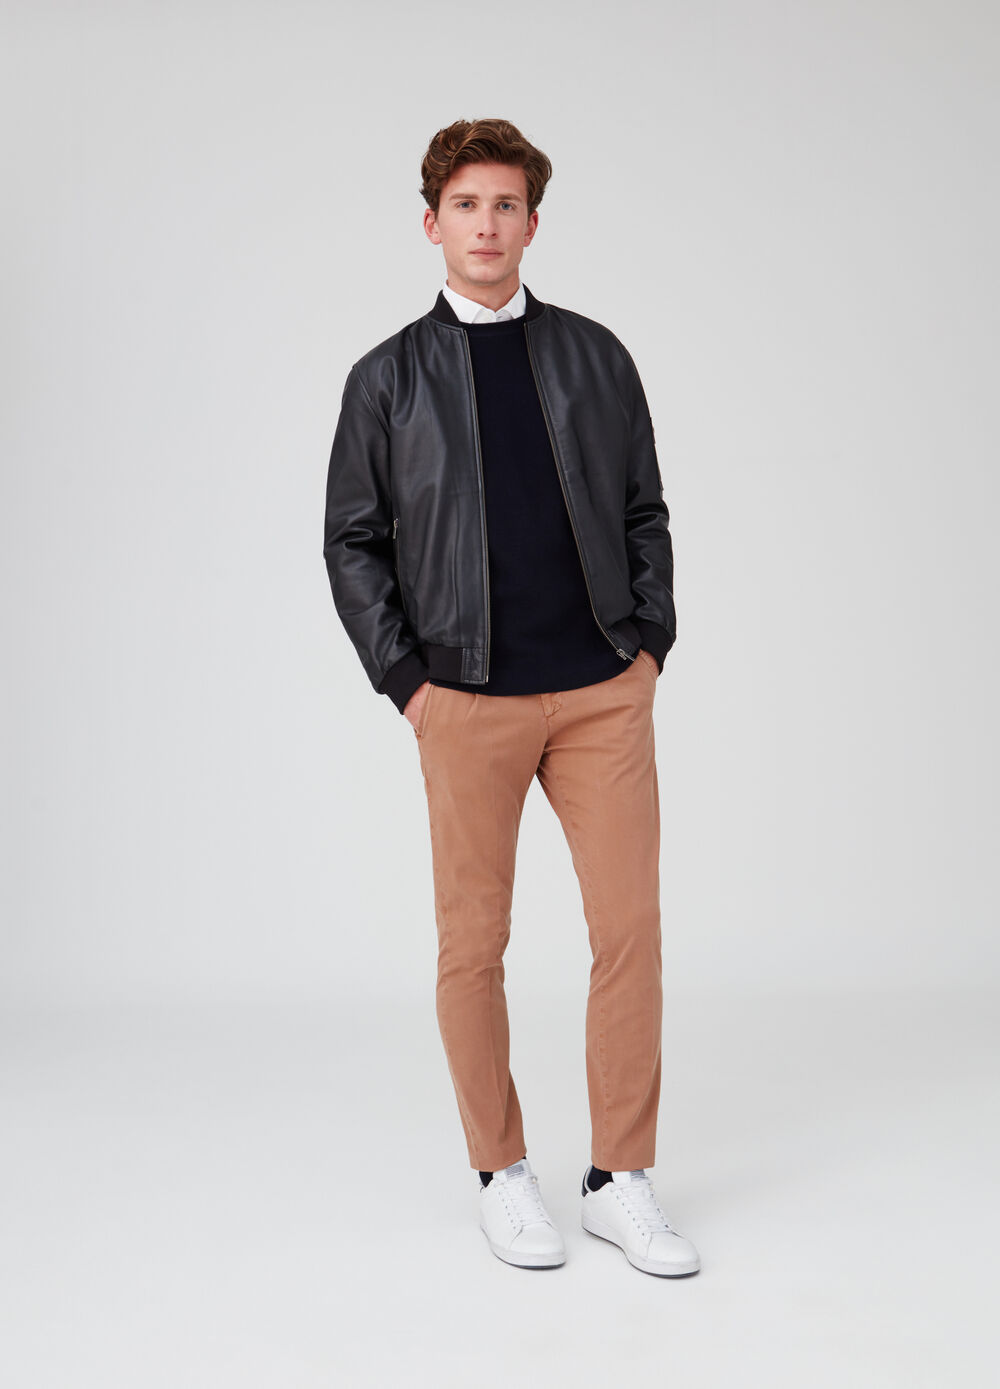 Rumford leather jacket with zip pockets